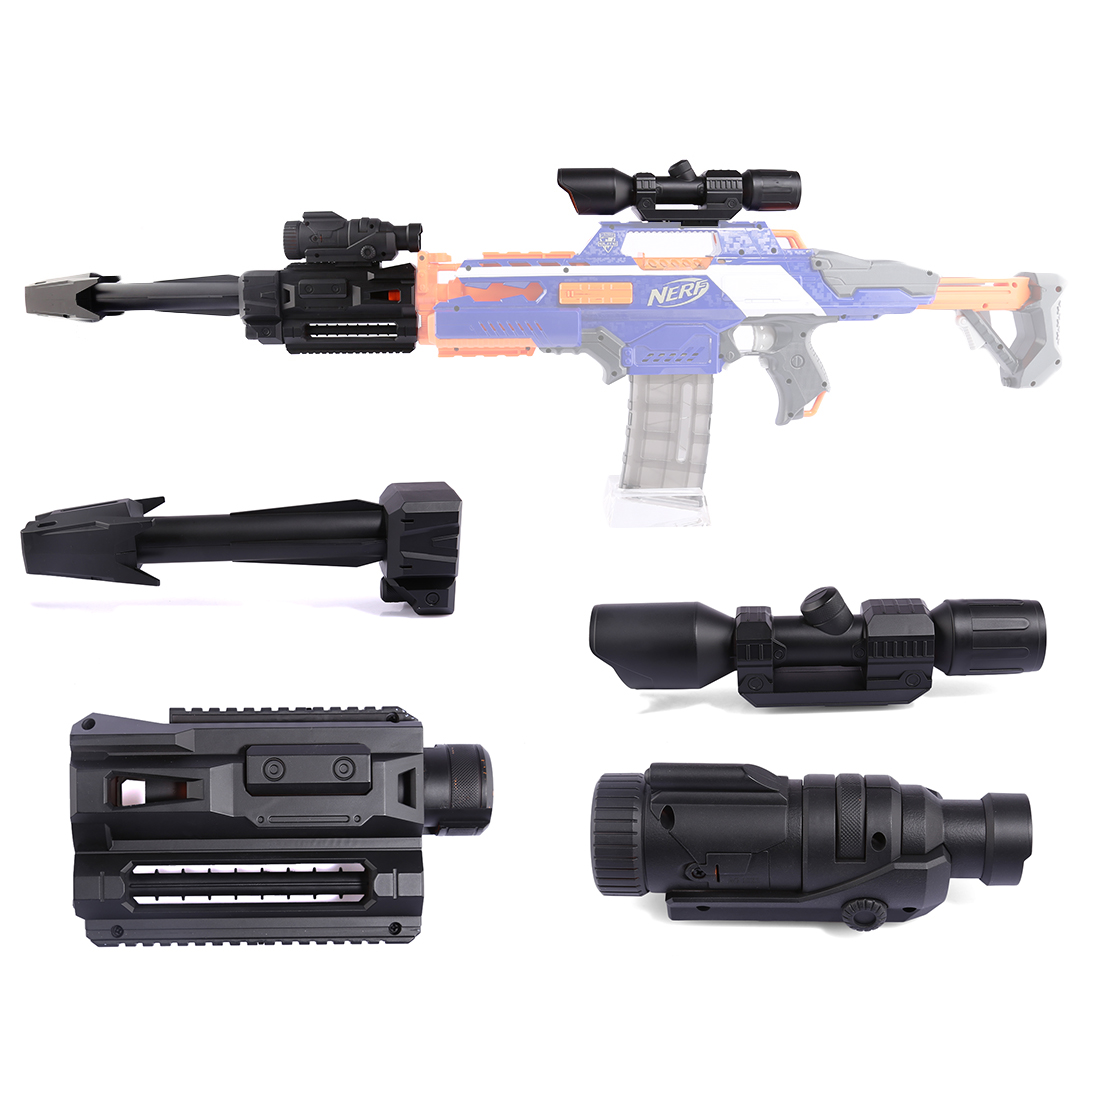 4 Pcs/set Modified Part Front Tube Decoration For Nerf Toy Gun Guide Rail + Sighting Device + Flashlight + Front Tube Decoration